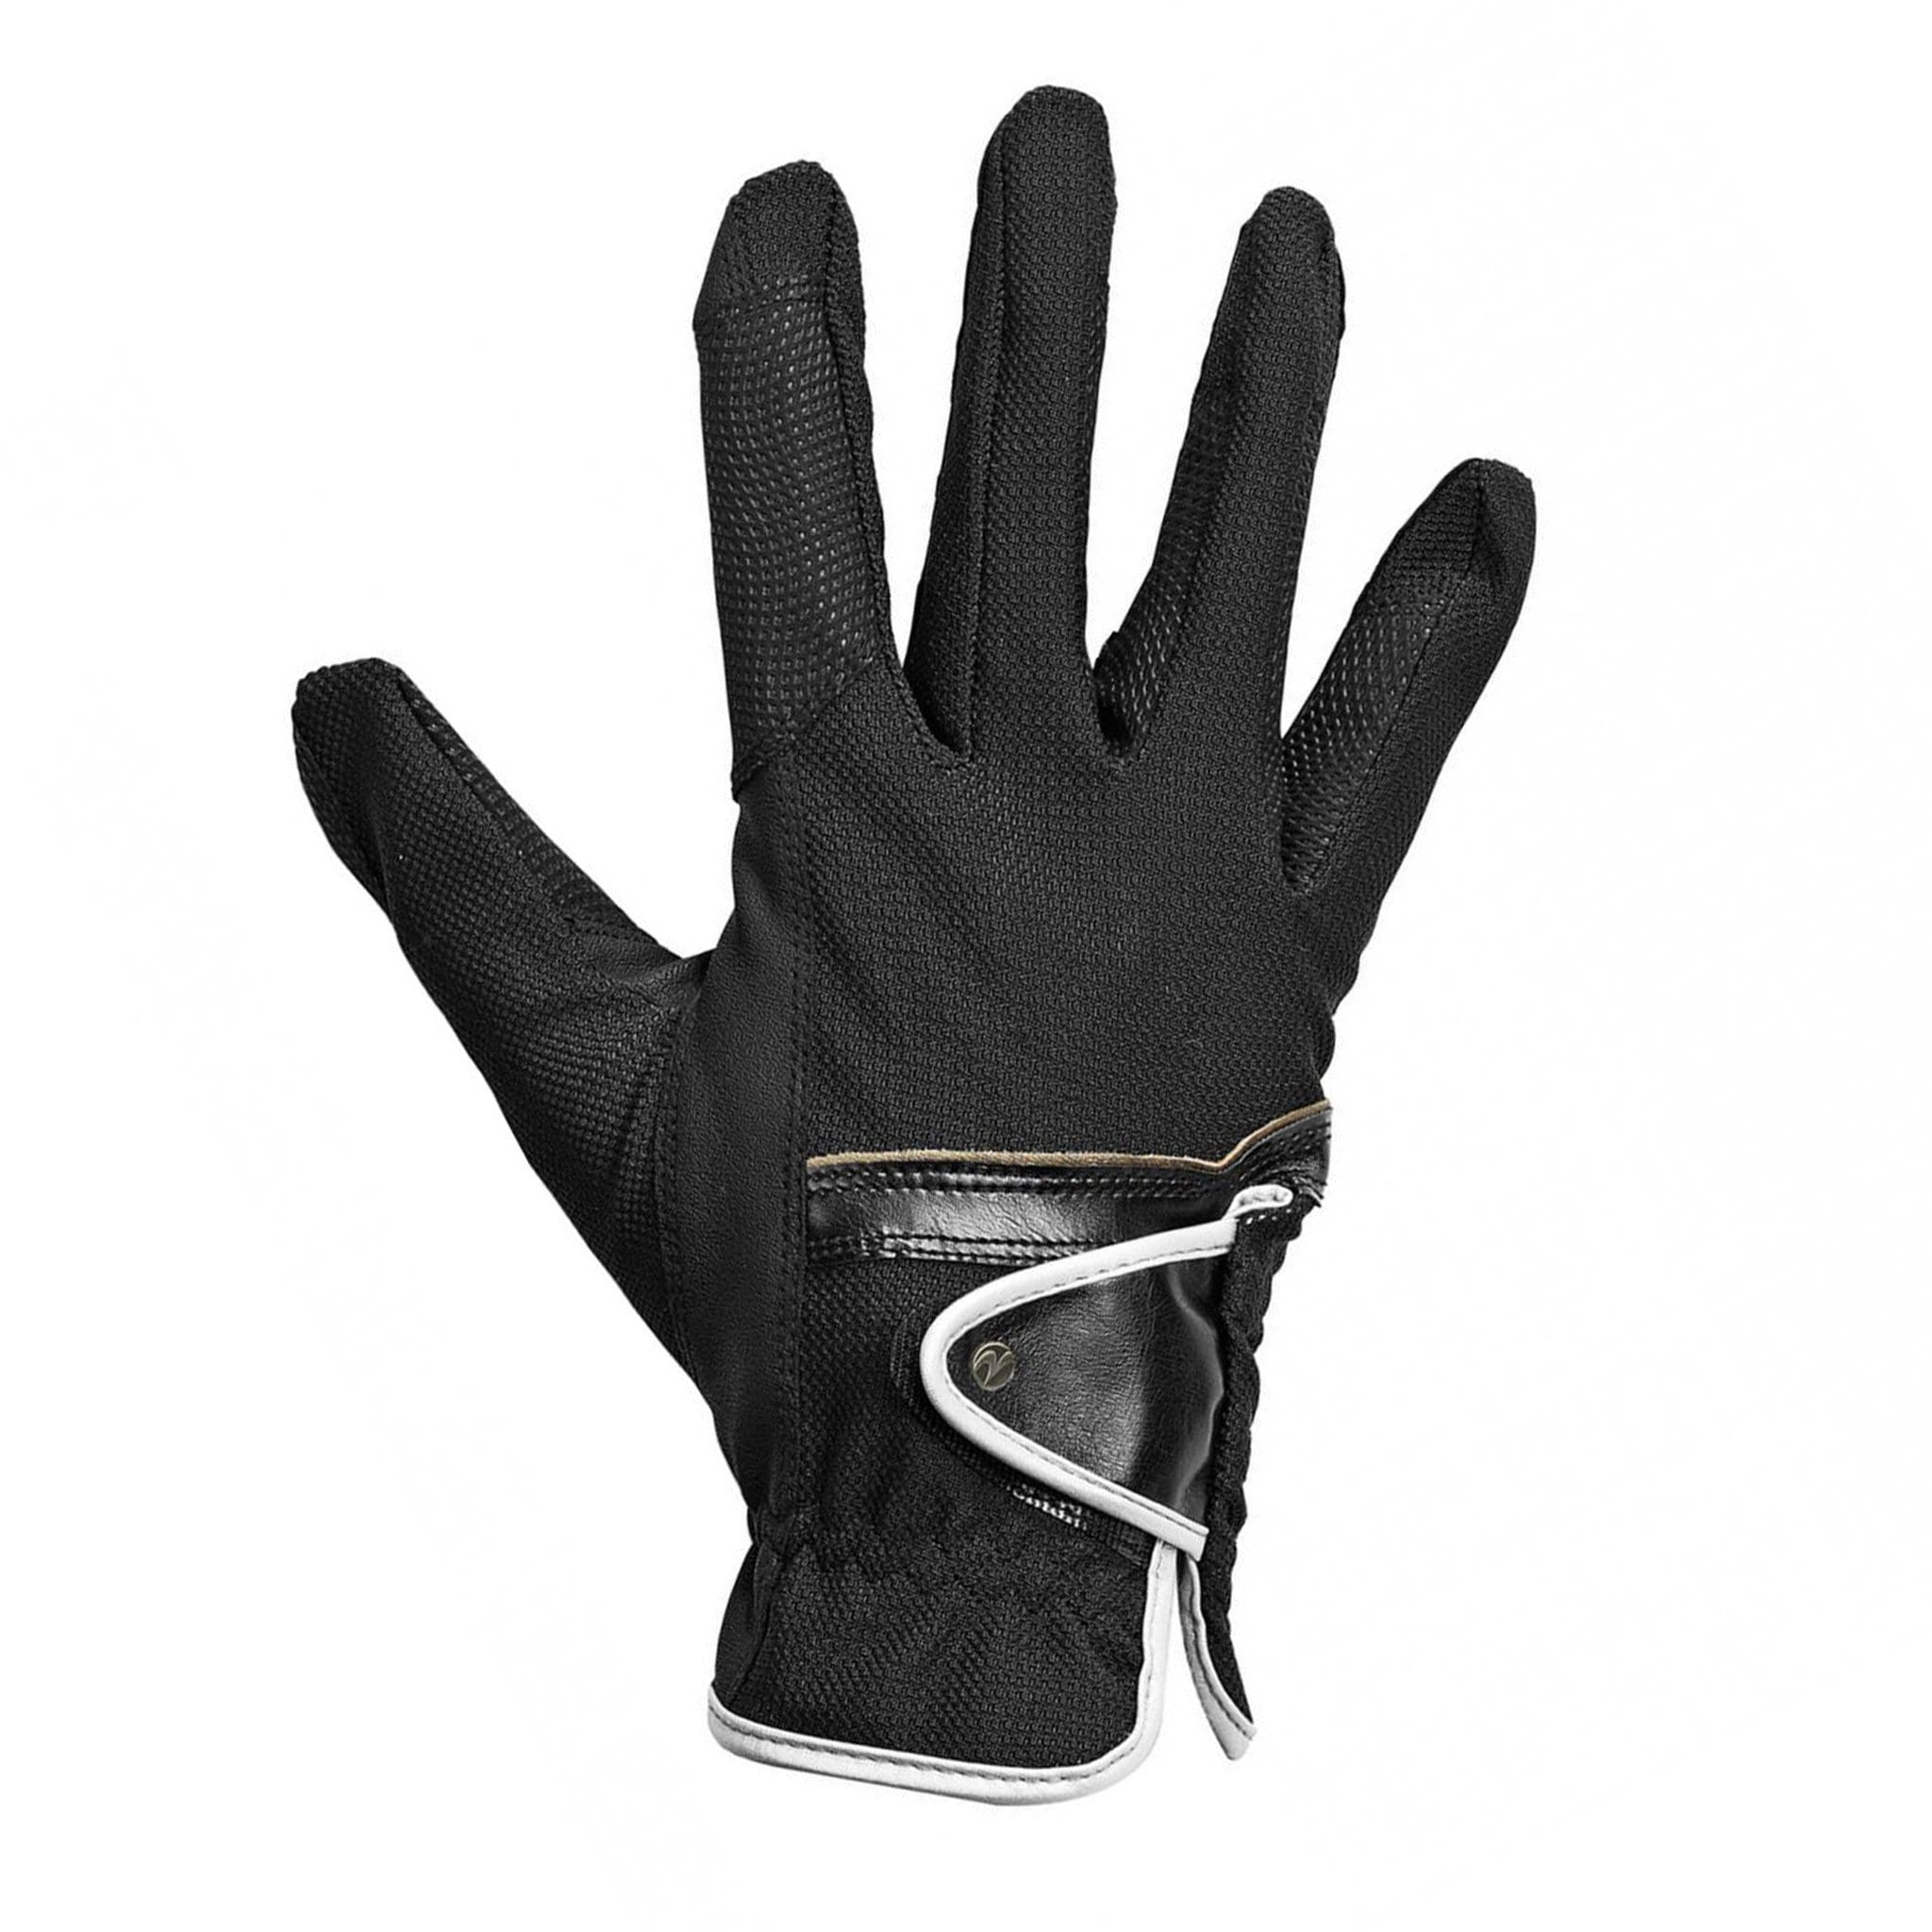 Busse Summer Riding Gloves Black 705242